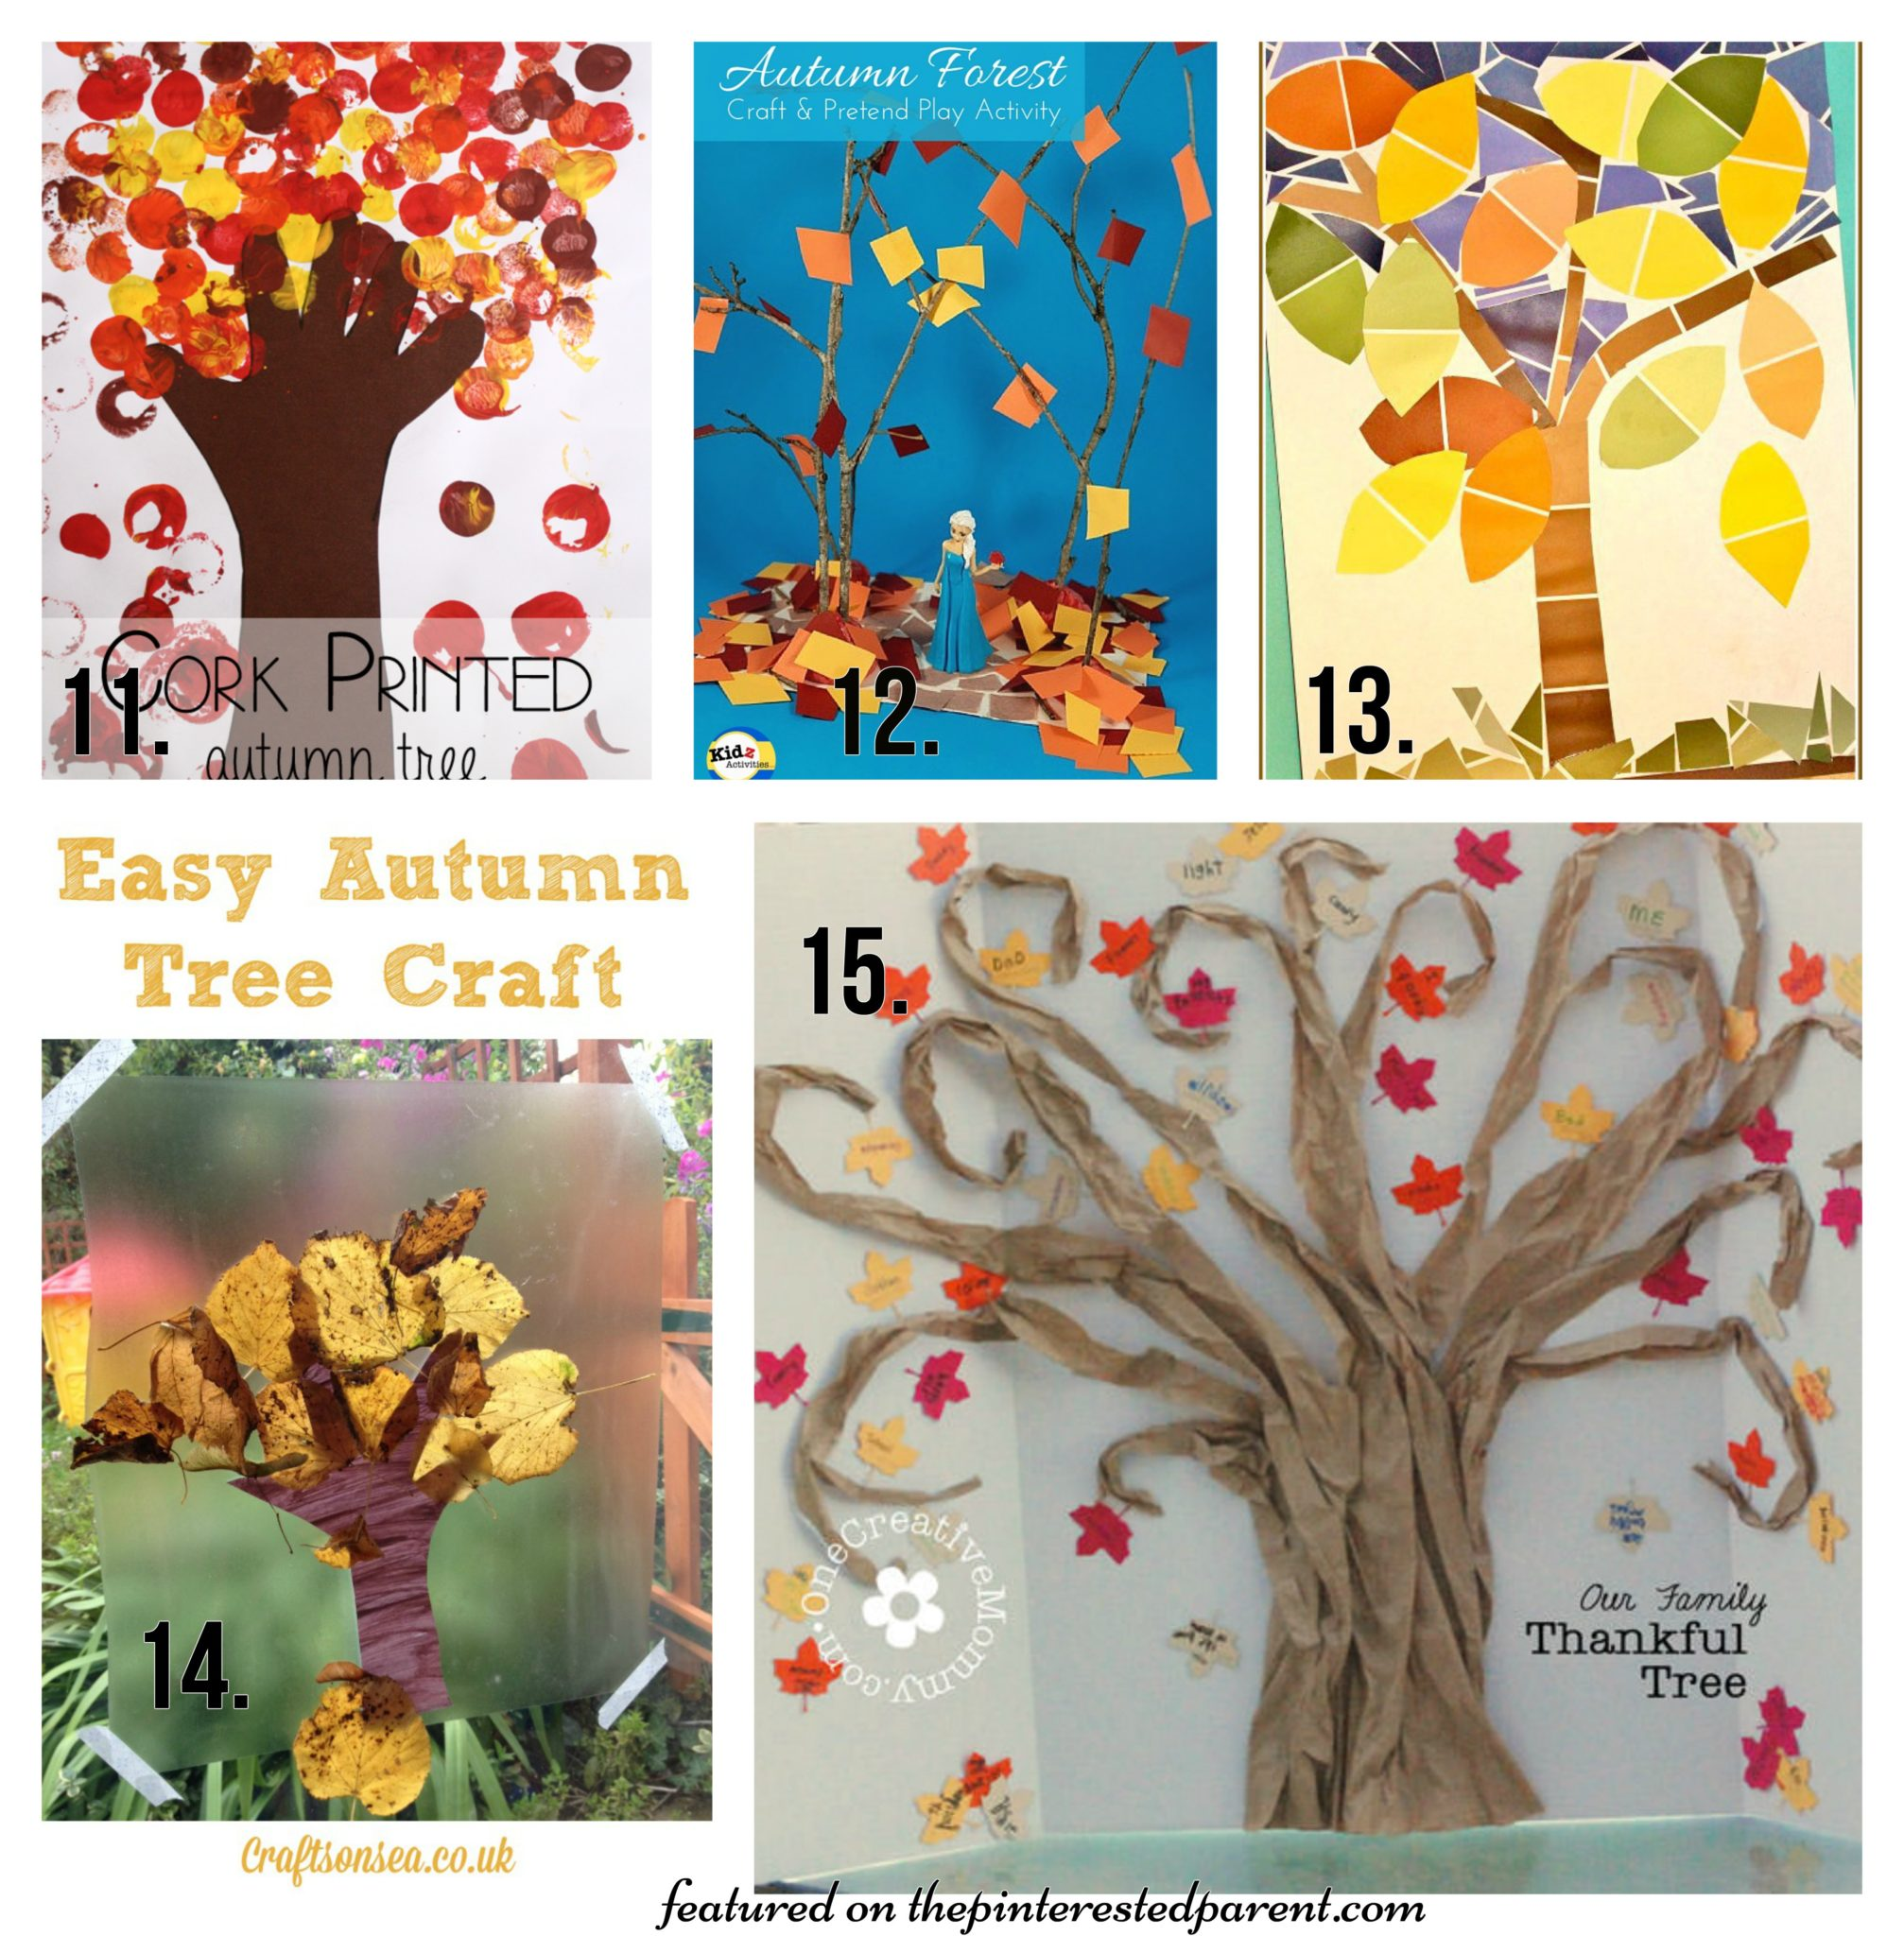 20 Beautiful Fall Tree Arts & Crafts project Ideas for kids - Autumn crafts  for preschoolers